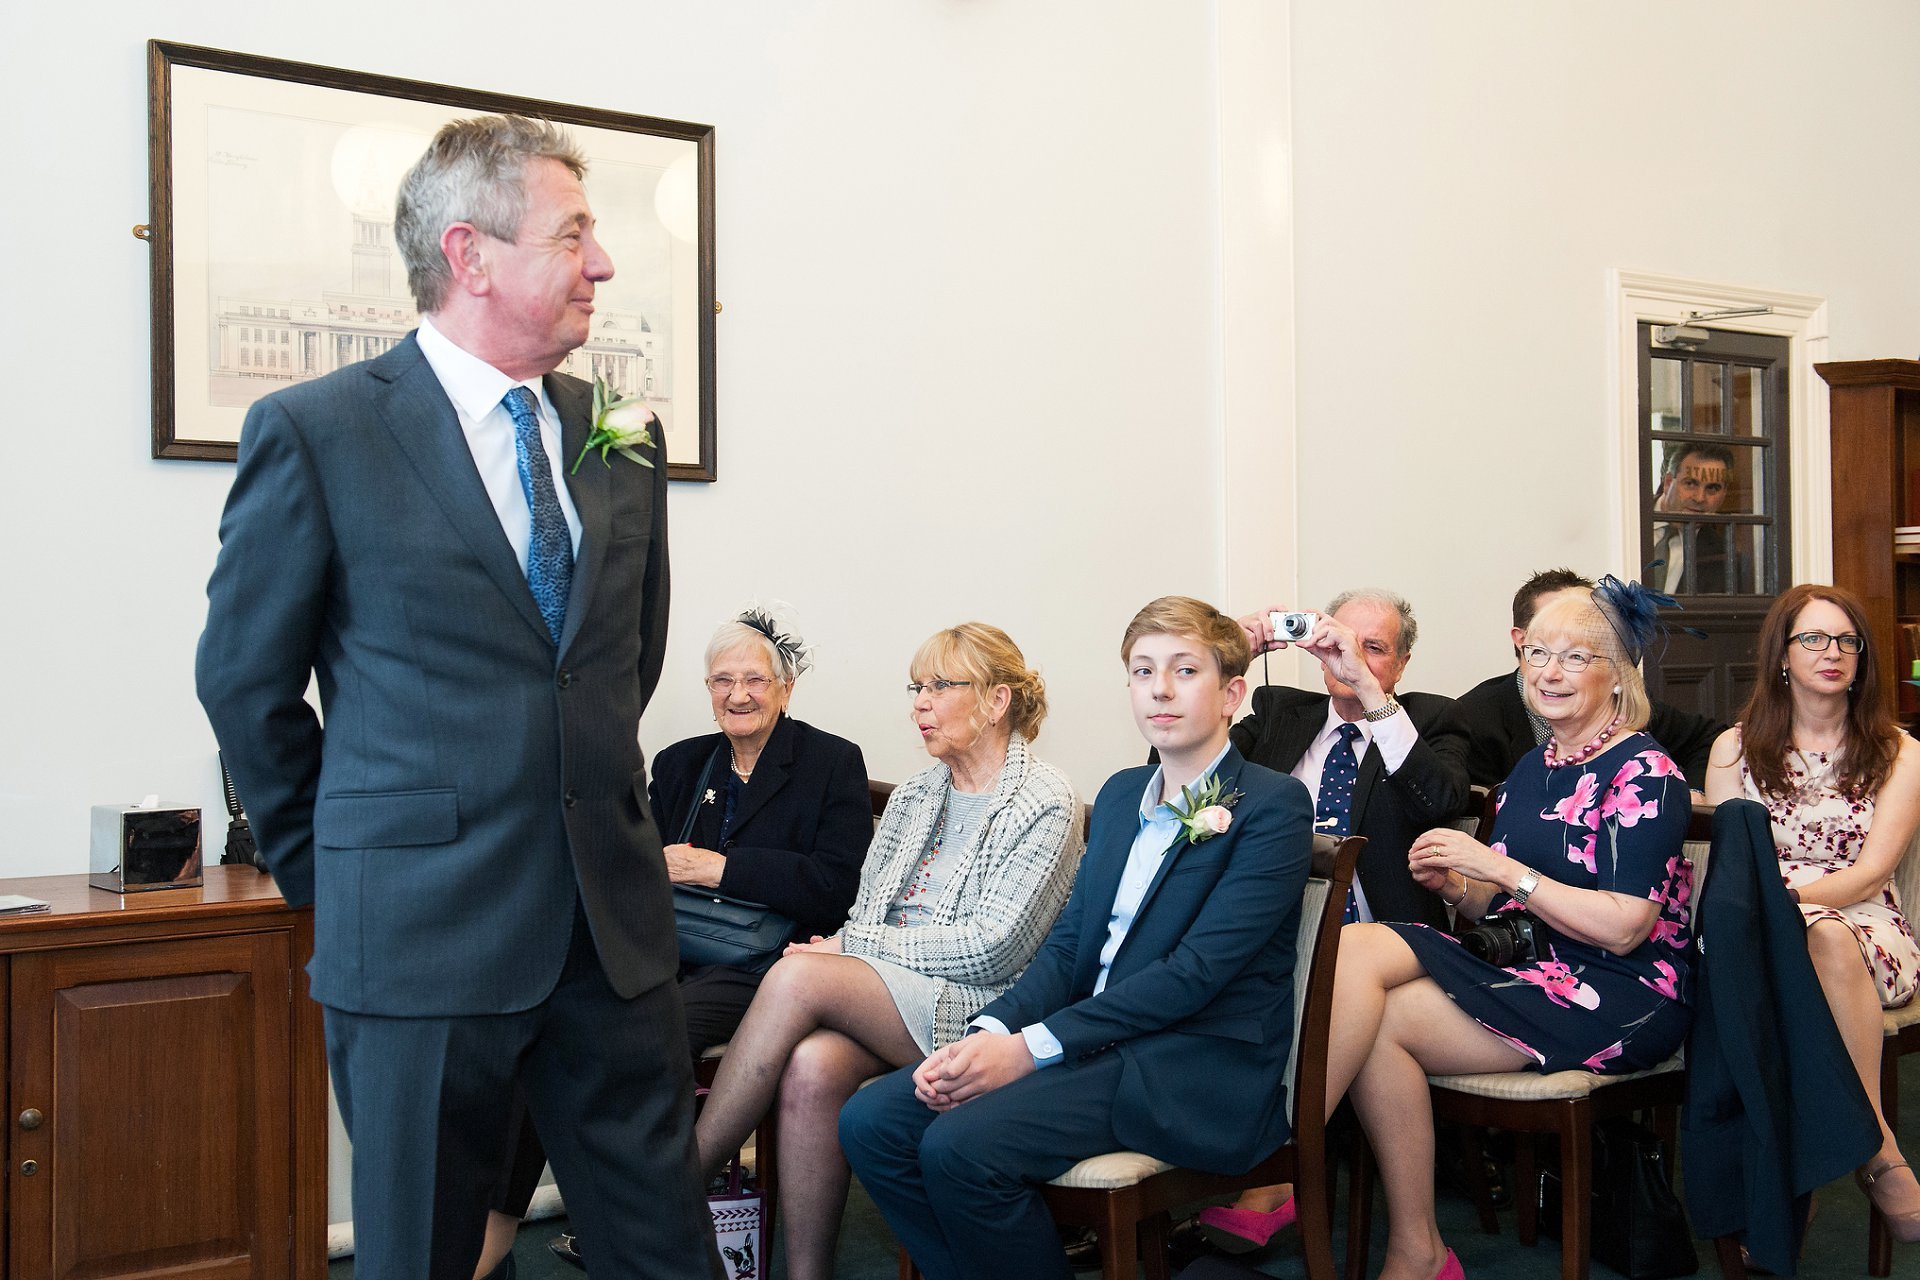 Groom, Sid, watches his bride enter the Marylebone Room at Mayfair Library